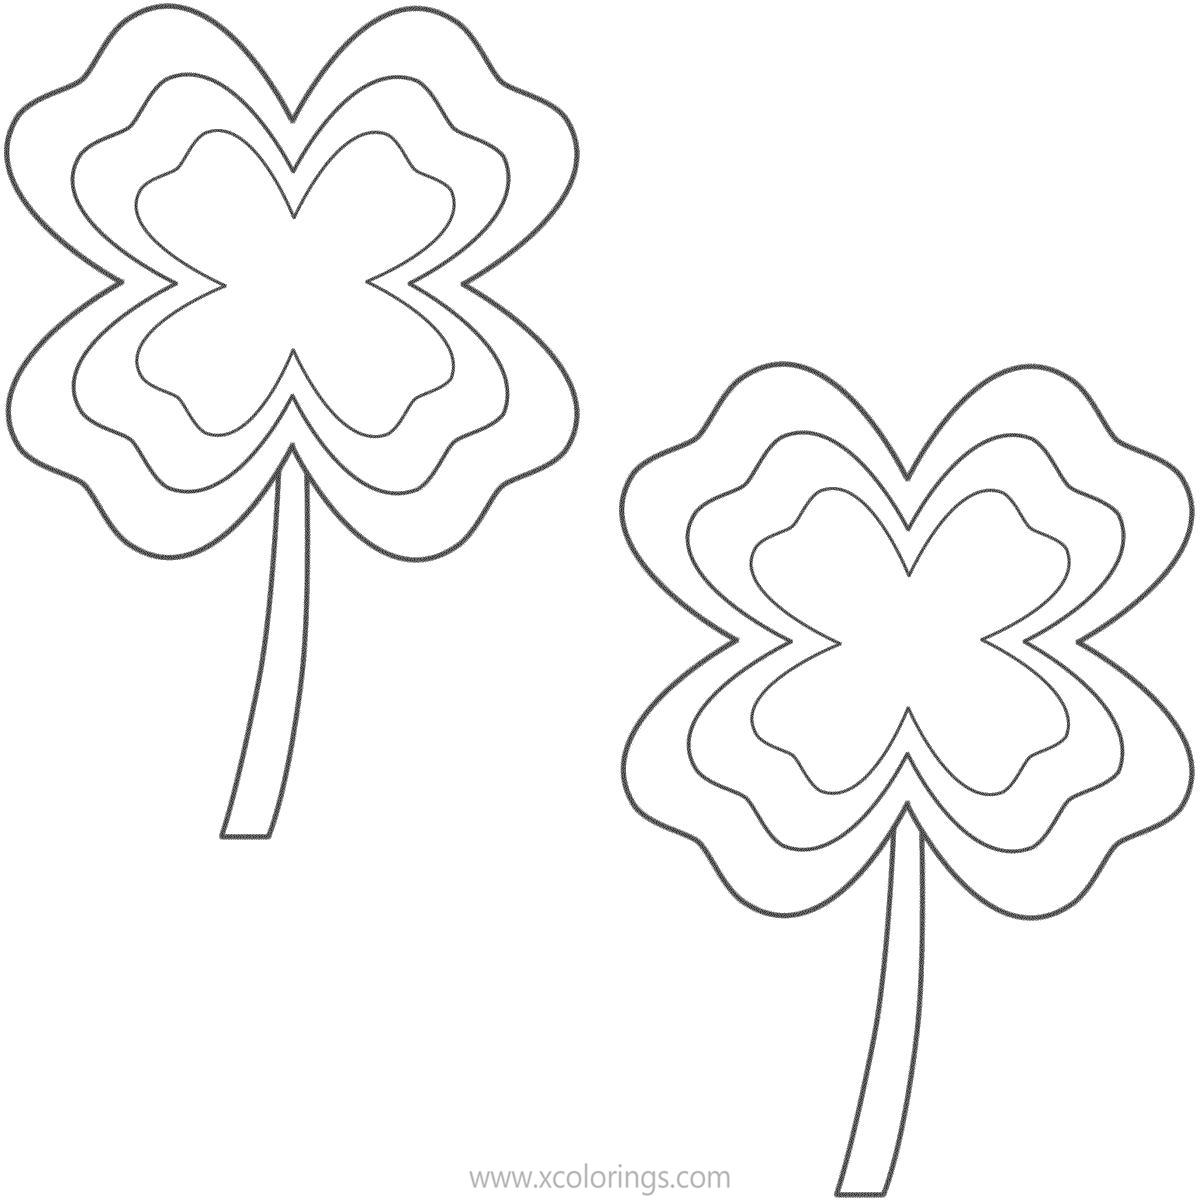 Free Two 4 Leaf Clovers Coloring Pages printable